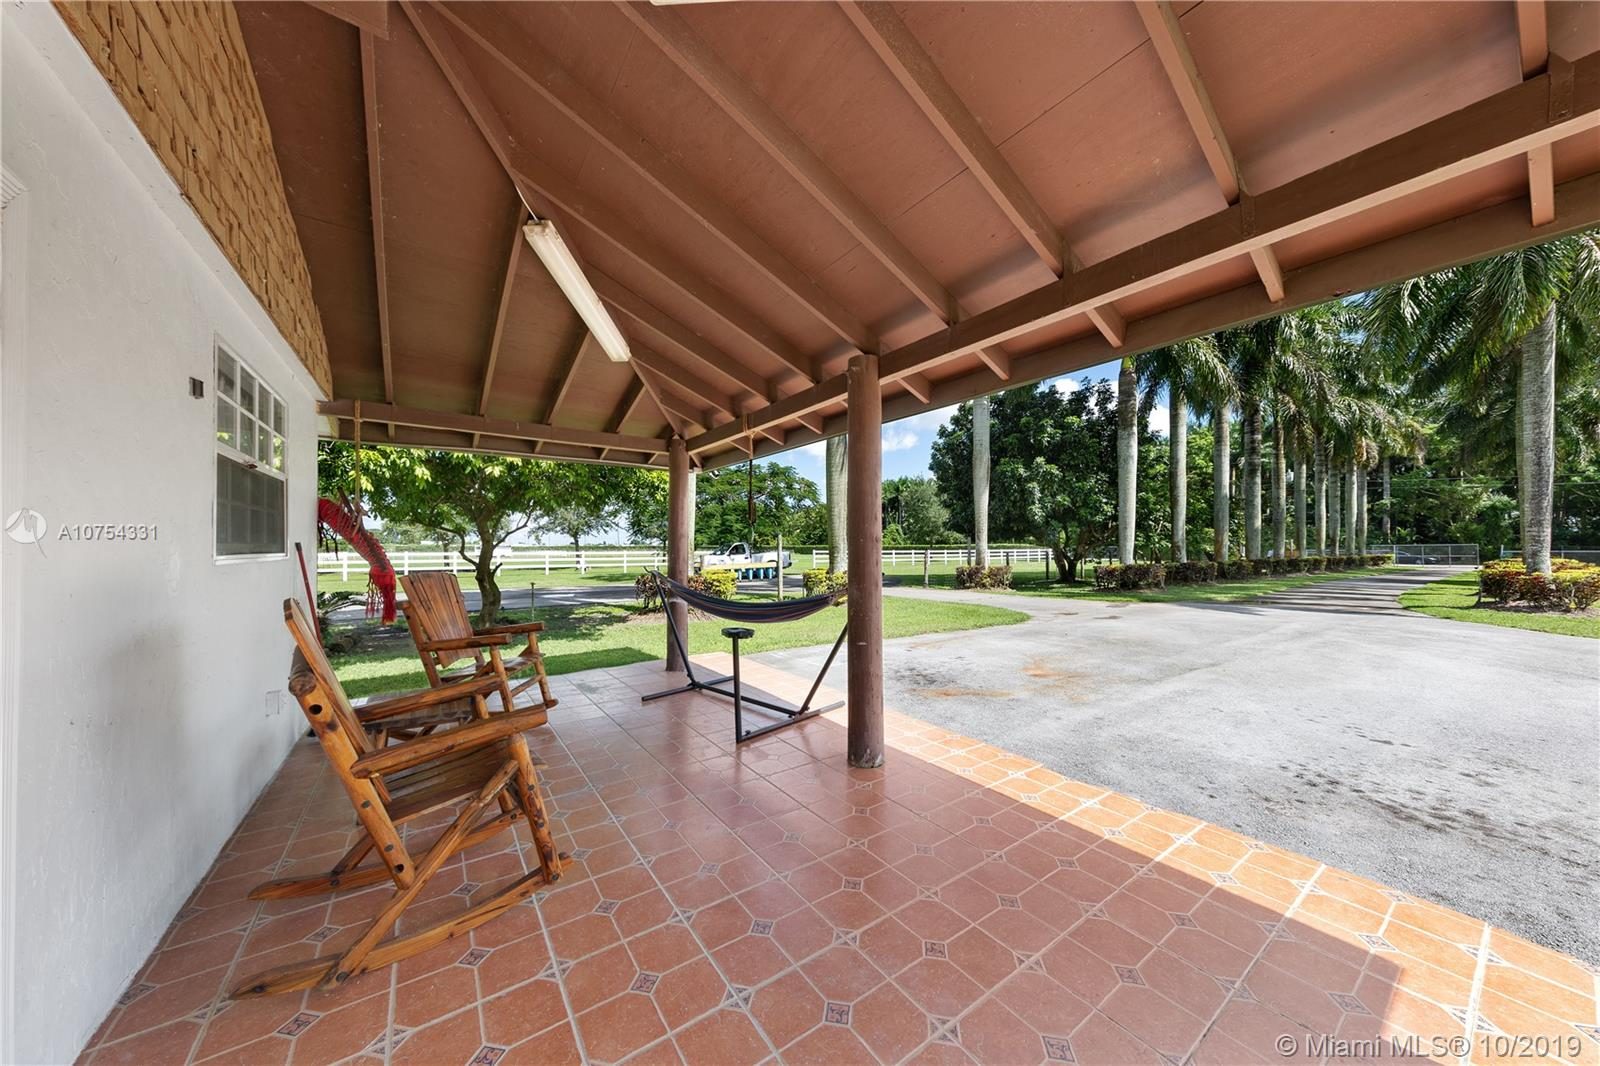 MAIN ENTRANCE BRINGS YOU STRAIGHT IN TO COTTAGE/OFFICE. THE DRIVE IS  LINED WITH ROYAL PALMS..ITS IMPRESSIVE. TH3 STABLES OFF TO THE SIDE( GROOMS QRTS). SPACIOUS OPEN LAND WITH MISC AGRI BUILDINGS